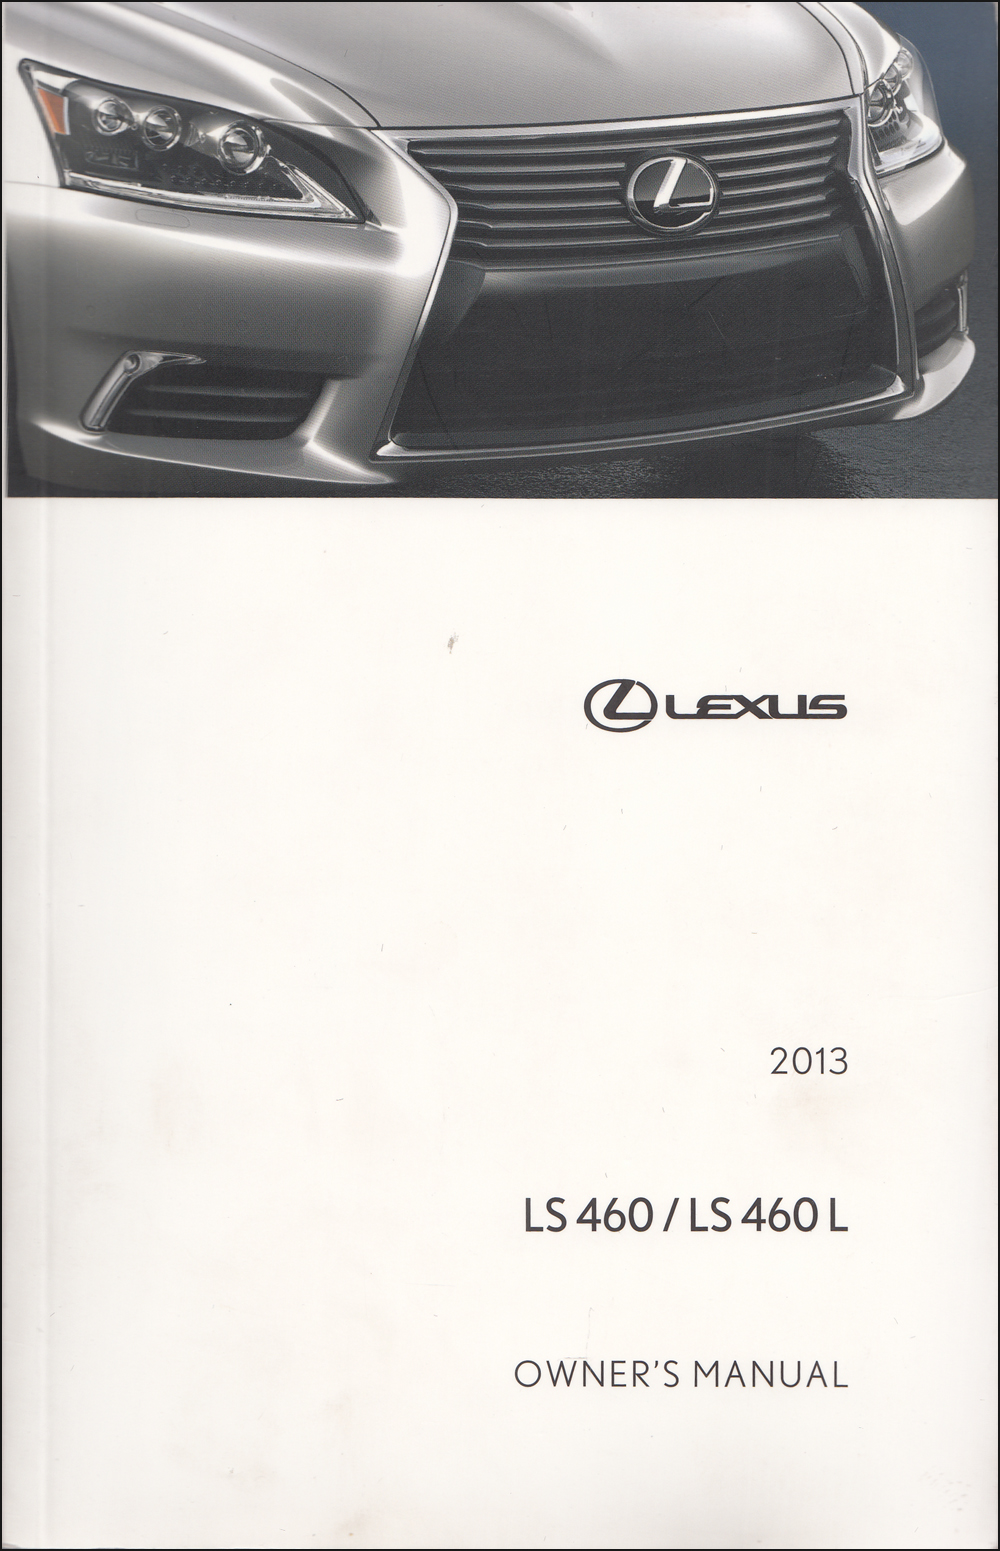 2013 Lexus LS460 / LS460L Owners Manual Original